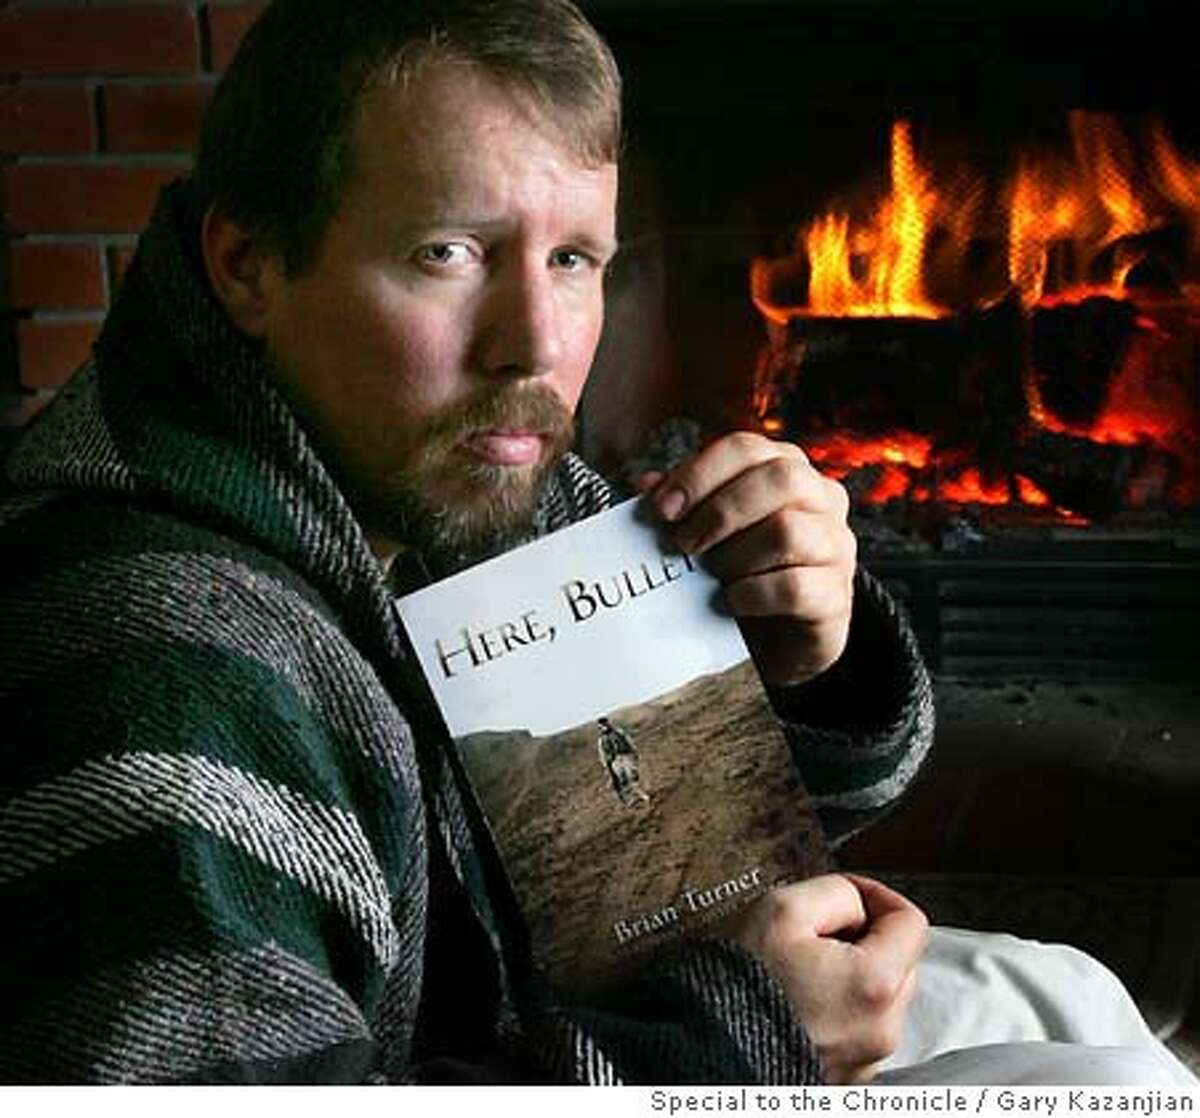 """�Brian Turner, at his home with his book Thursday, Dec. 28, 2006 in Fresno, Calif. Turner is a poet who served seven years in the U.S. Army. He deployed to Bosnia-Herzegovina and spent a year as an infantry leader in Iraq with the 3rd Stryker Brigade Combat Team. He wrote a book of poems about Iraq, """"Here, Bullet,"""" that published to much acclaim. Turner teaches creative writing at Calif. State University, Fresno. . By GARY KAZANJIAN/SPECIAL TO THE CHRONICLE Gary Kazanjian"""